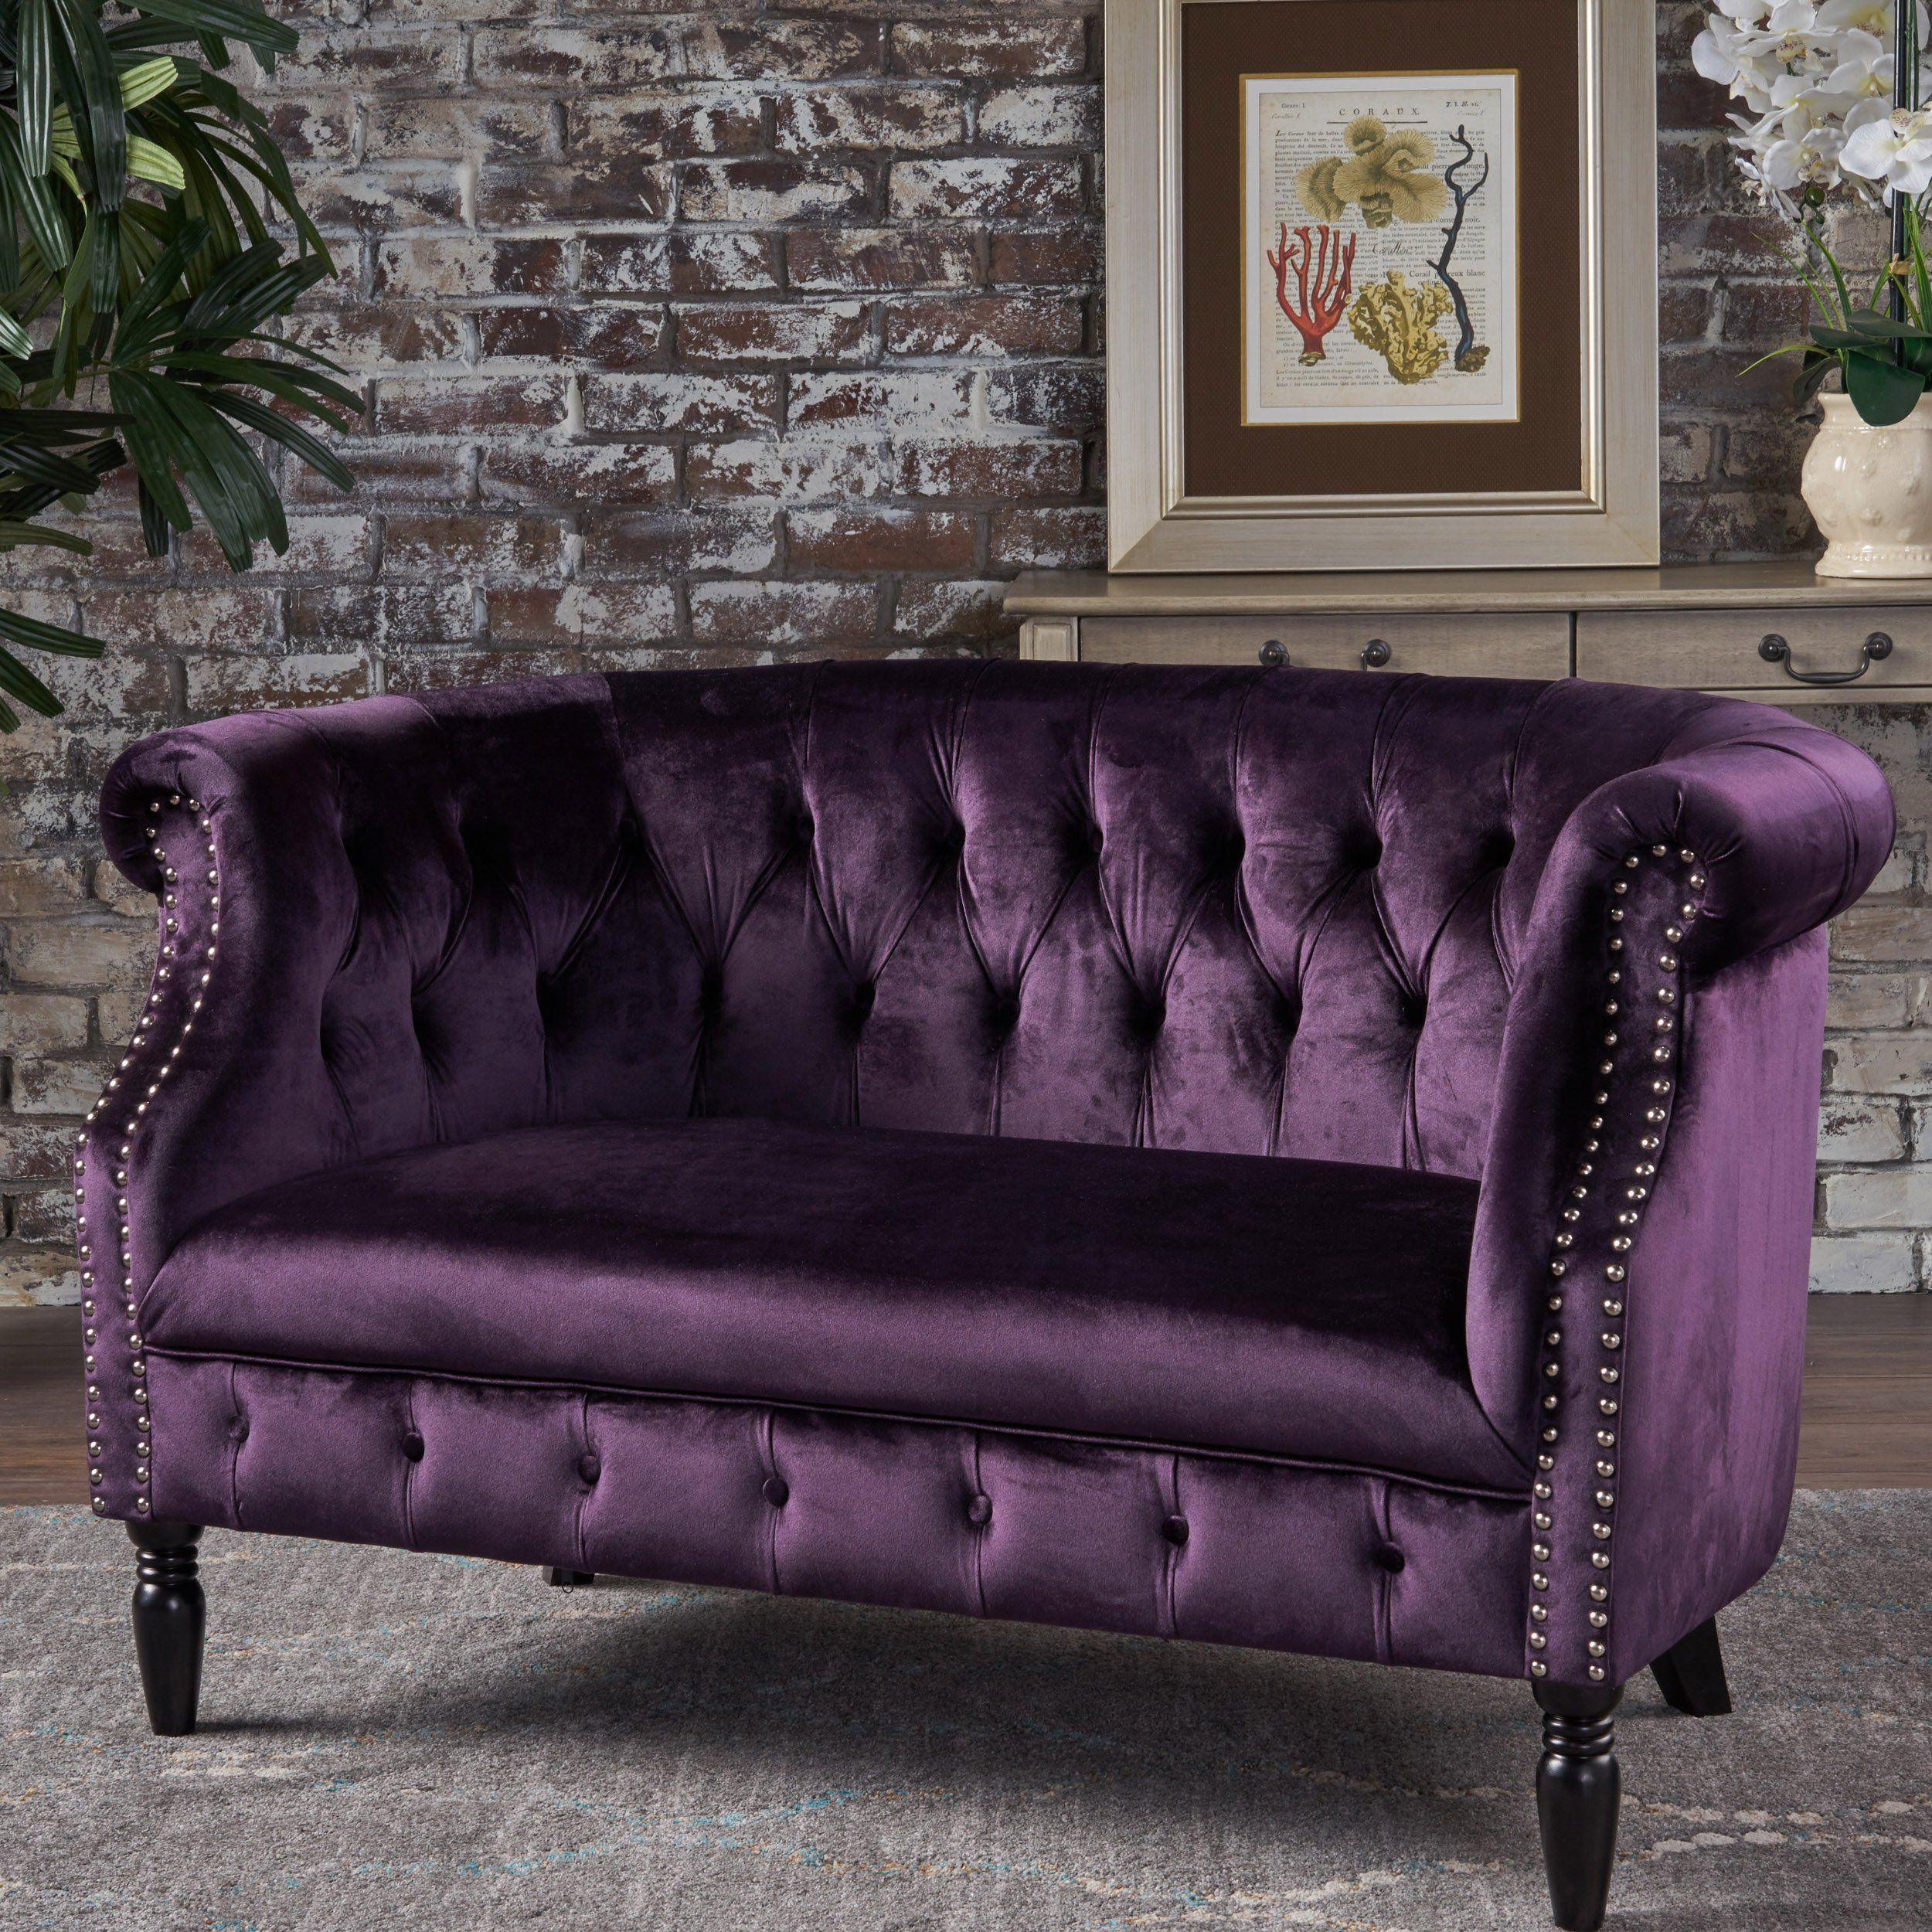 loveseat christopher overstock plum garden shipping knight velvet wingback by product tufted leora home fabric today free